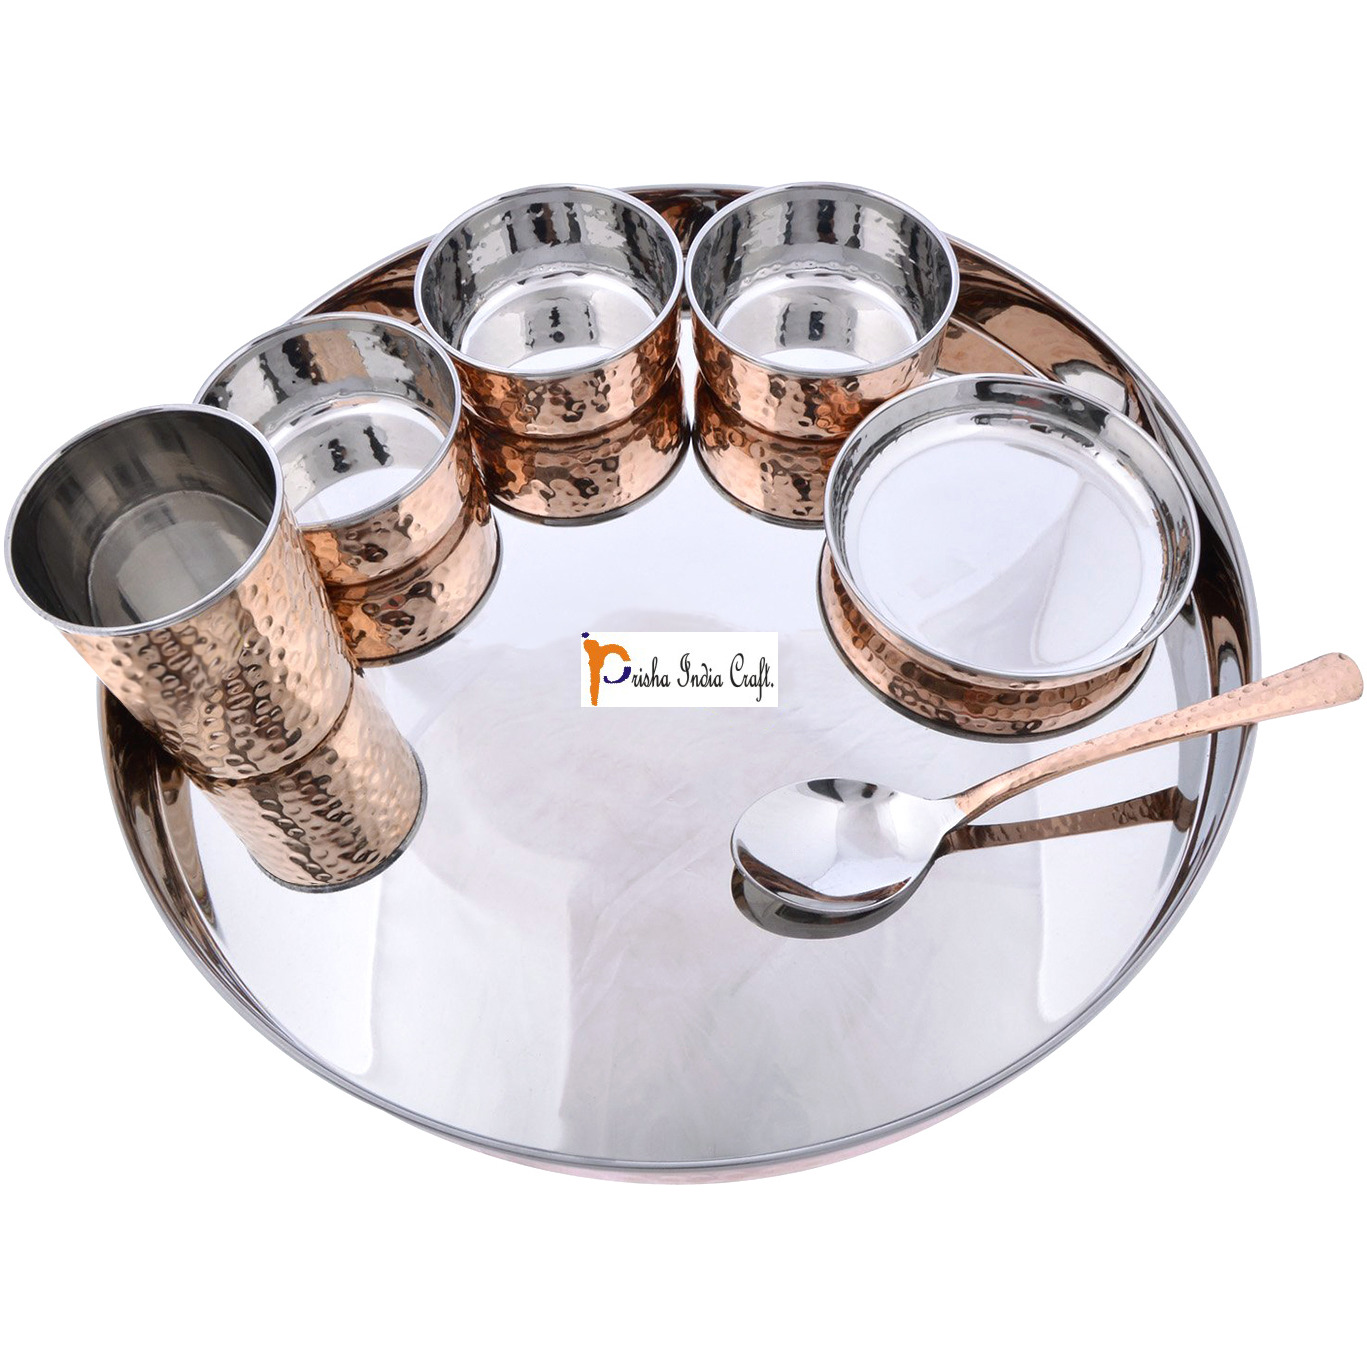 Prisha India Craft B. Set of 3 Dinnerware Traditional Stainless Steel Copper Dinner Set of Thali Plate, Bowls, Glass and Spoon, Dia 13  With 1 Pure Copper Pitcher Jug - Christmas Gift